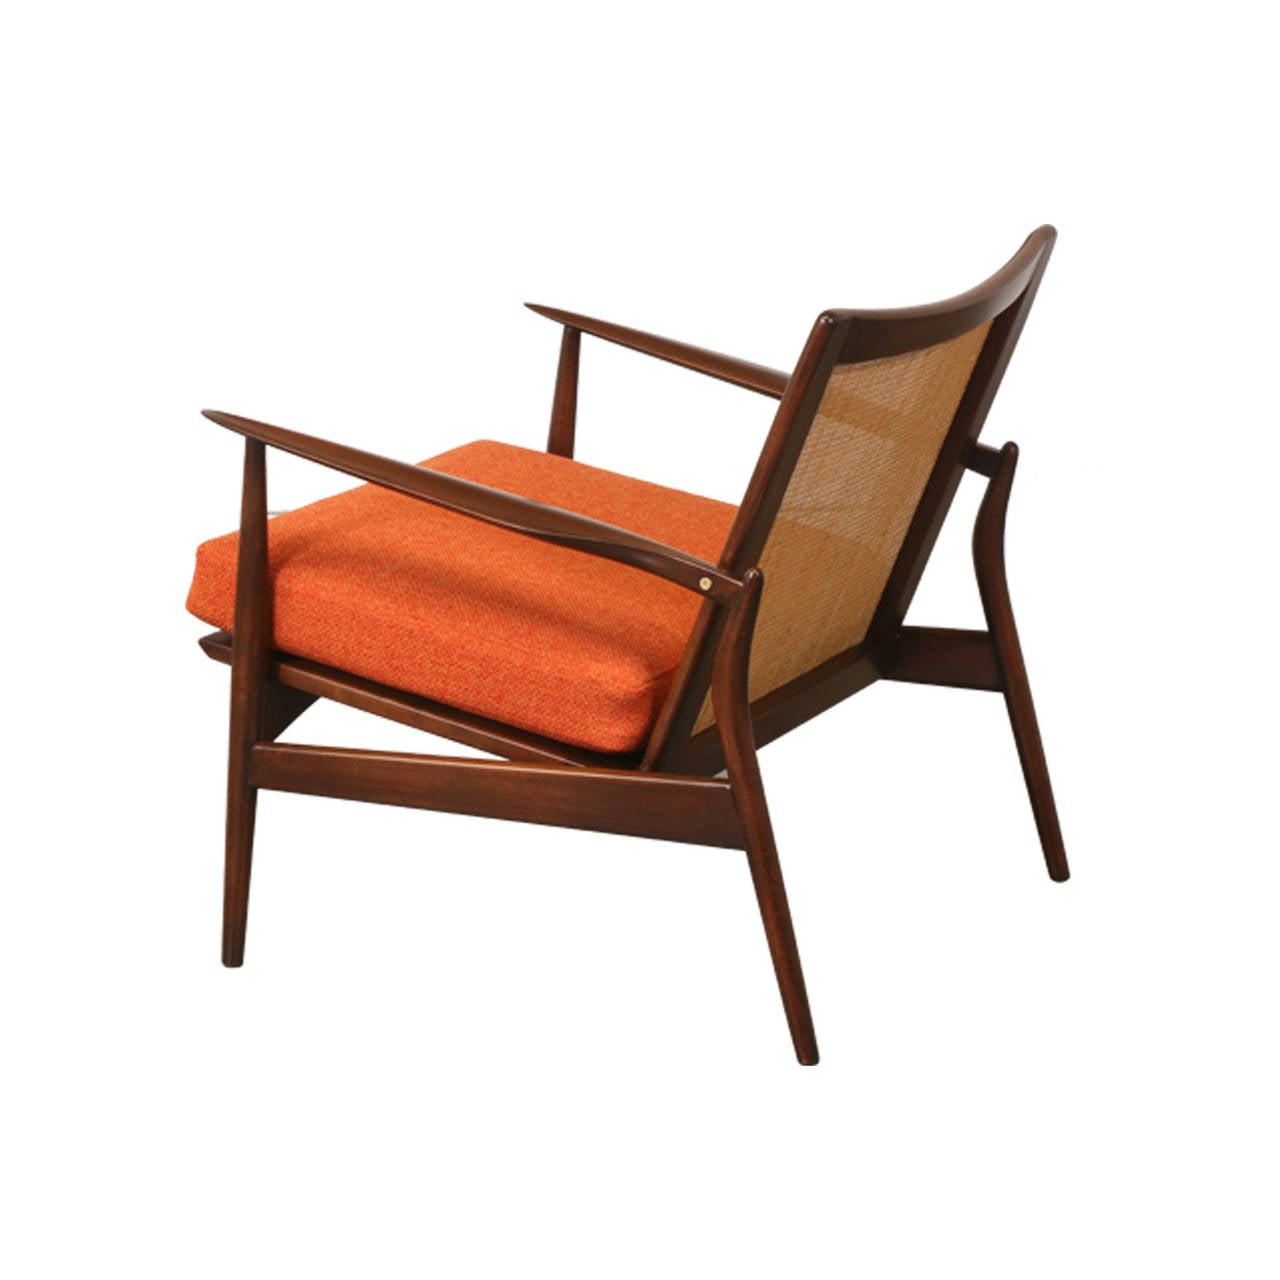 This sculptural pair of lounge chairs by ib kofod larsen is no longer - Ib Kofod Larsen Spear Chair For Selig 2